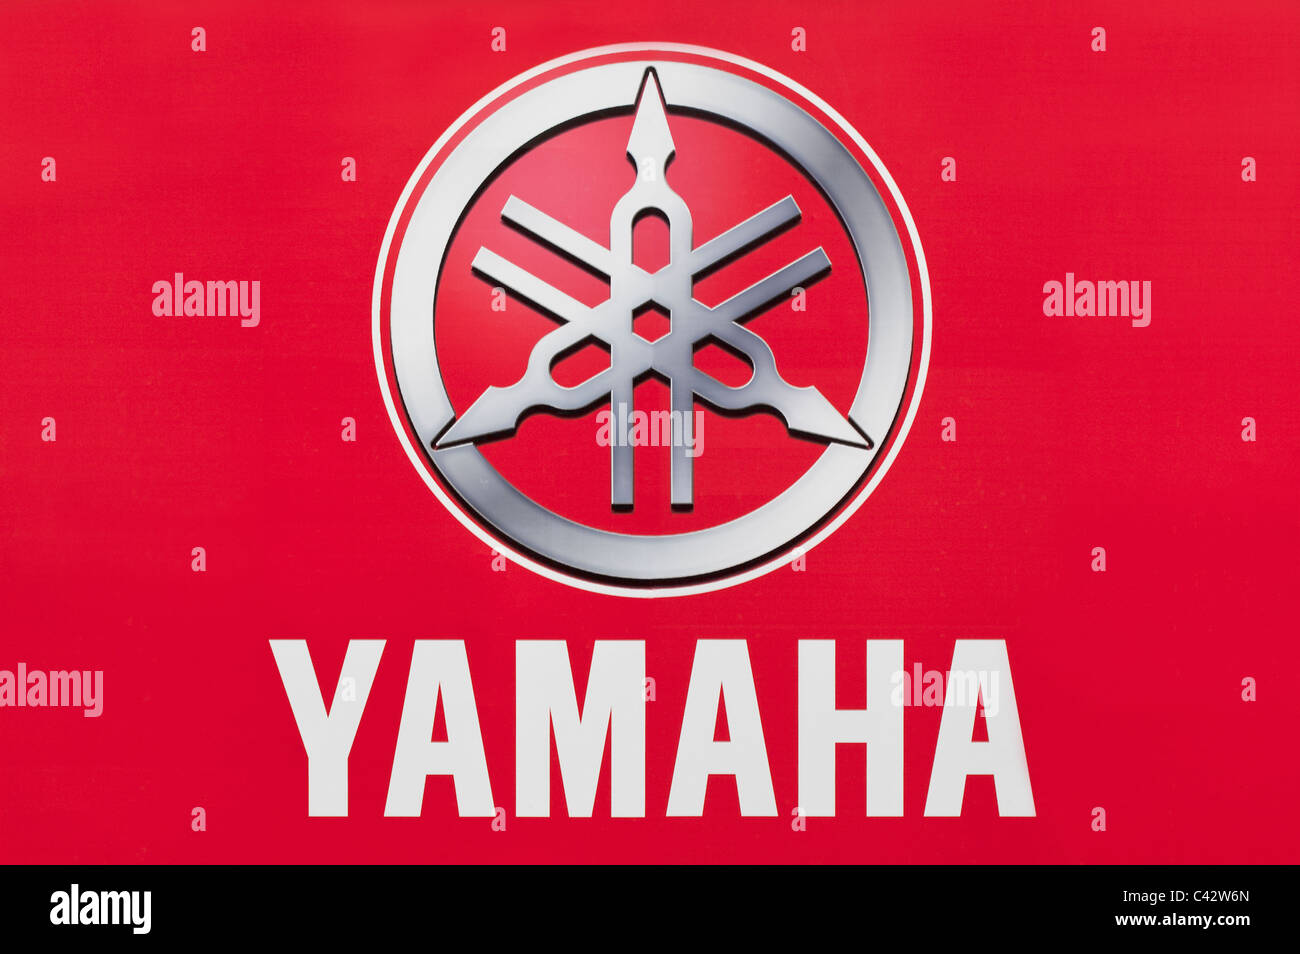 Yamaha Logo Stock Photos Yamaha Logo Stock Images Alamy